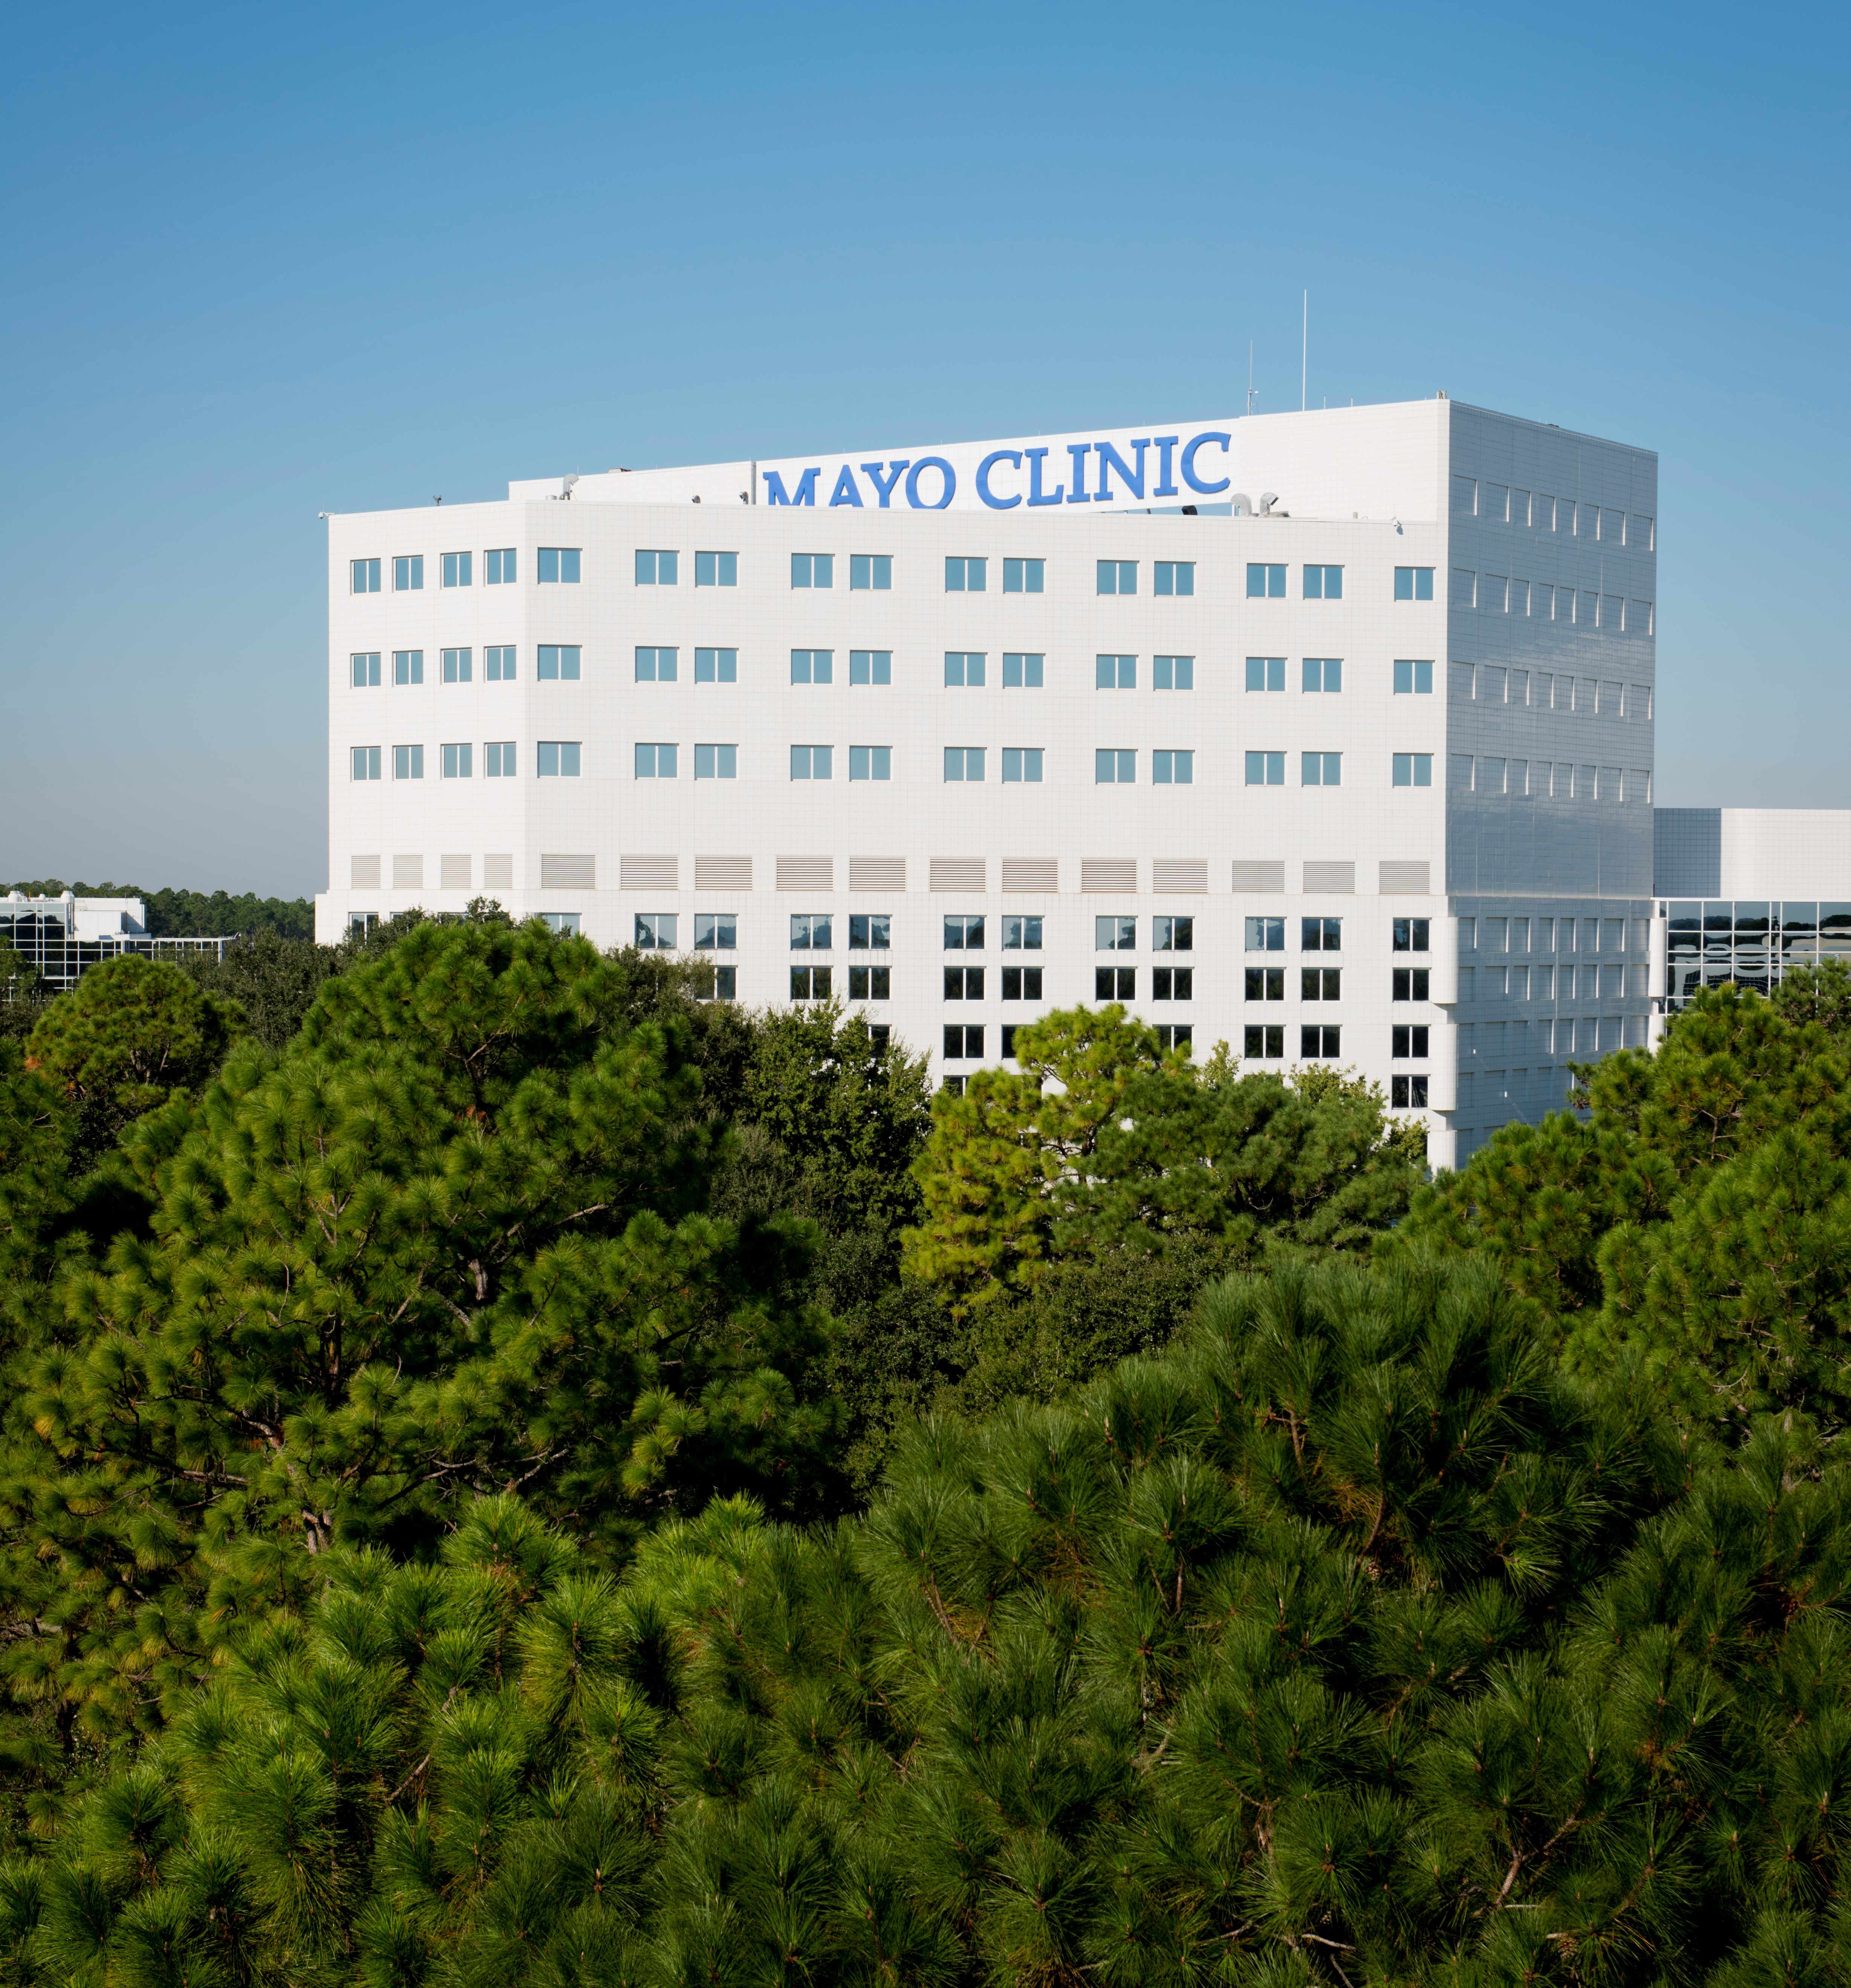 Mayo Clinic in Florida campus building